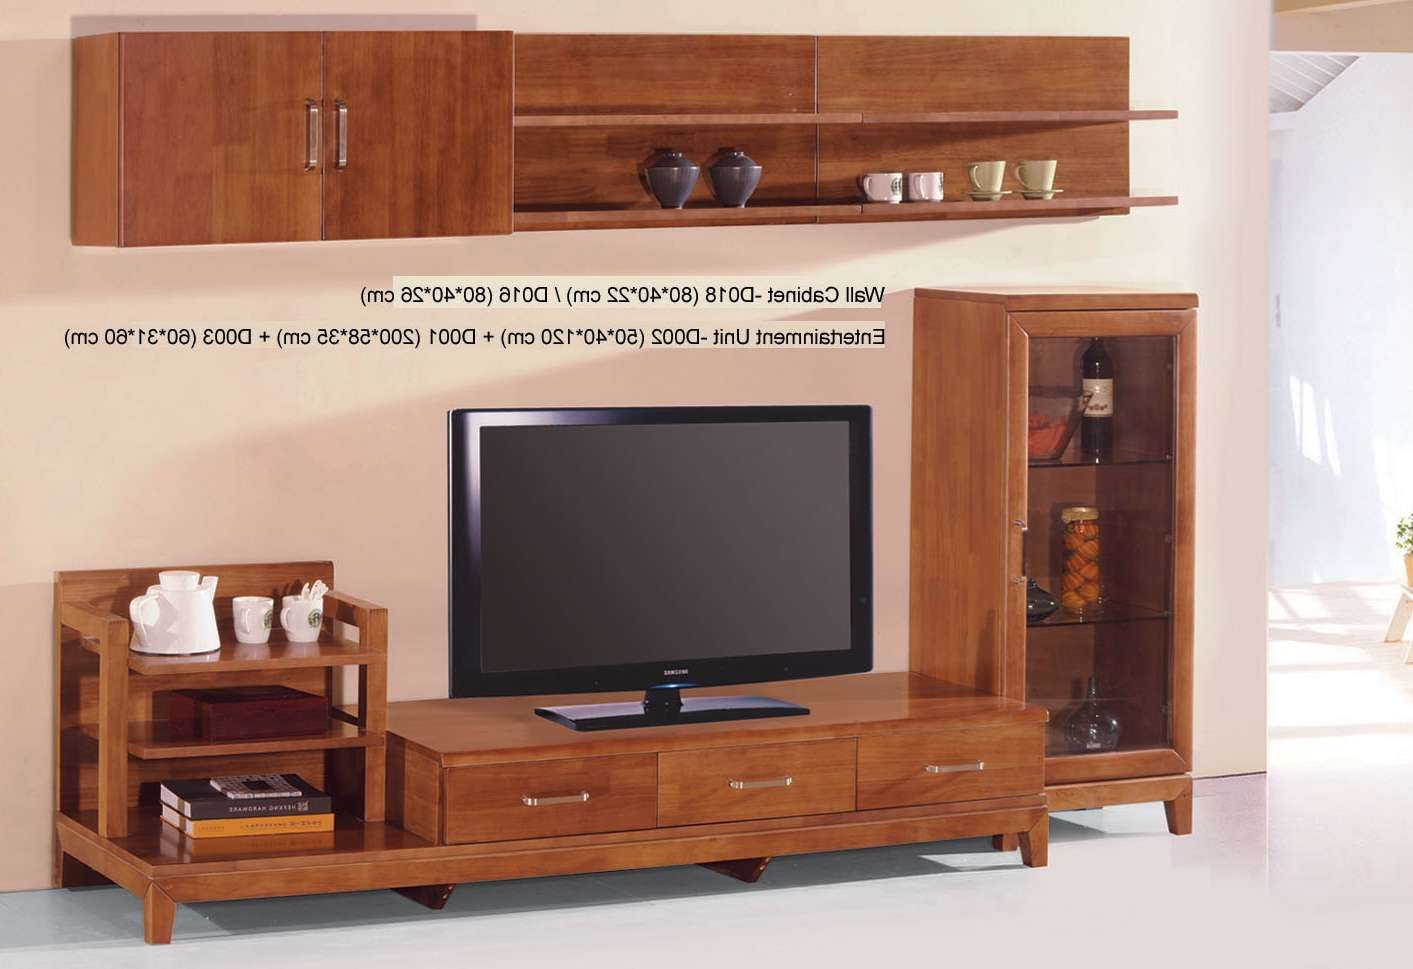 Country Style Tv Stand Unit Idea In Honey Oak Finish With Three With Country Style Tv Cabinets (View 2 of 20)